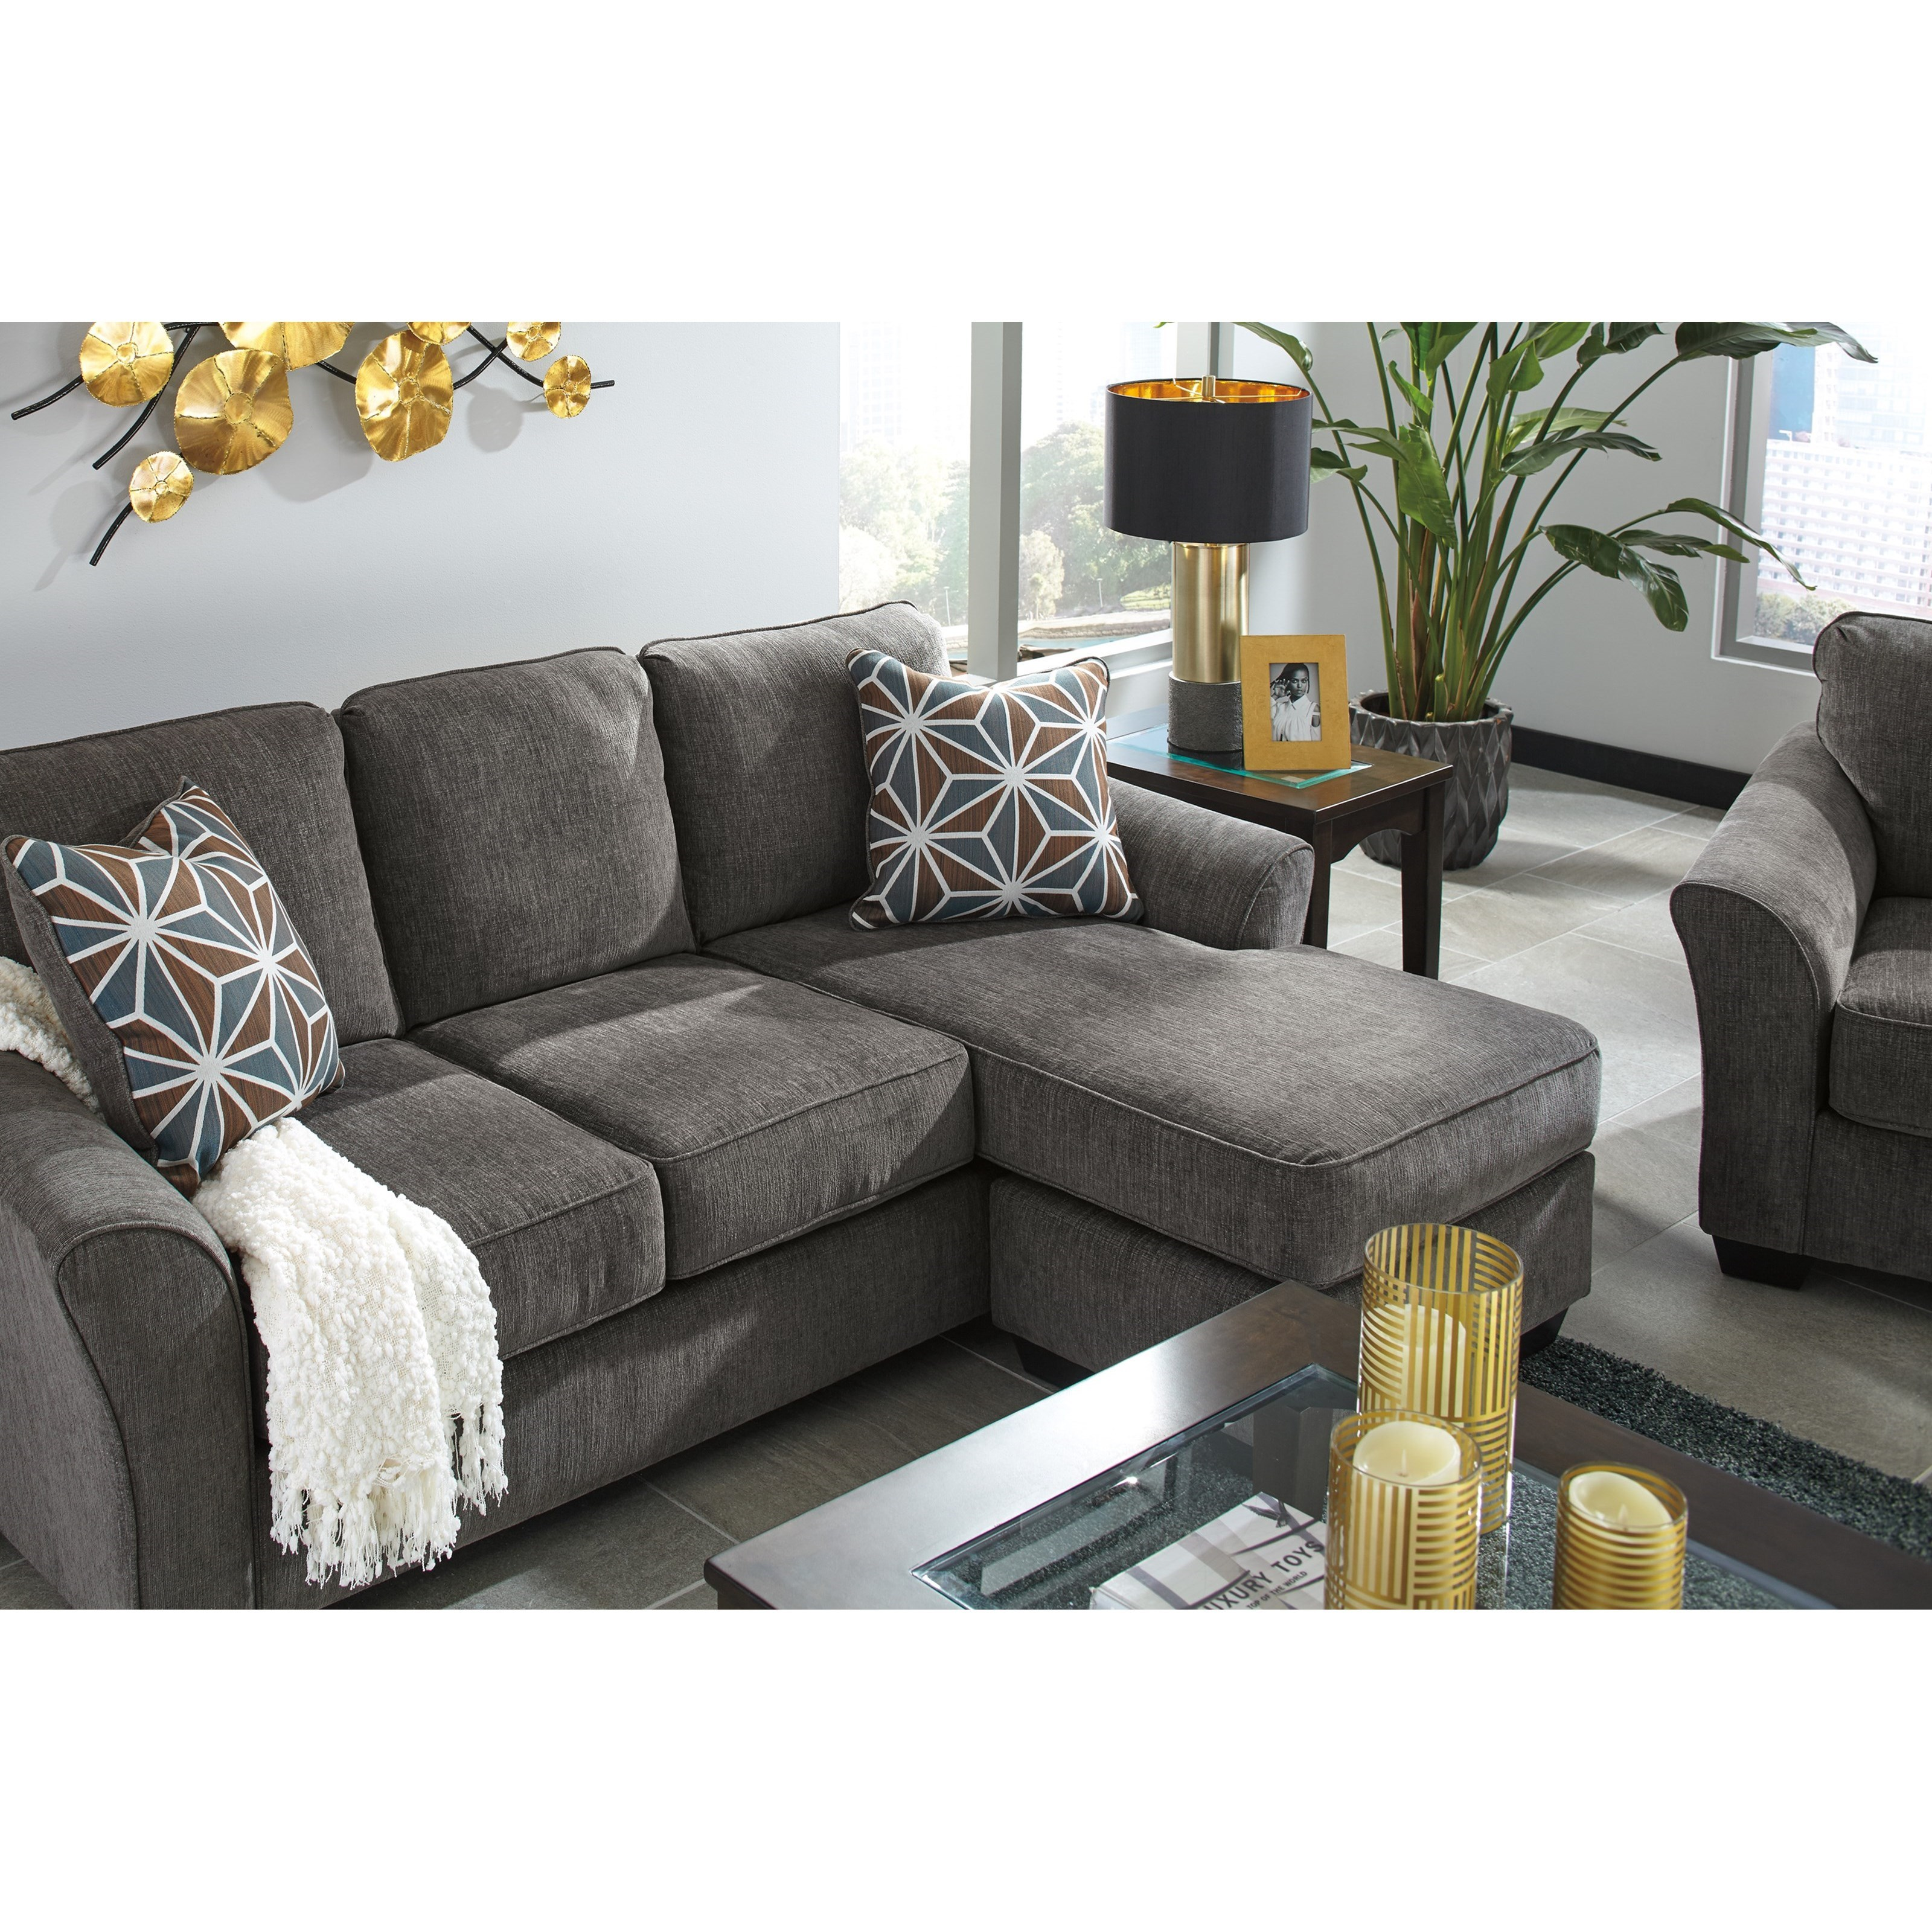 Brise Casual Contemporary Sofa Chaise Becker Furniture World Sectional Sofas